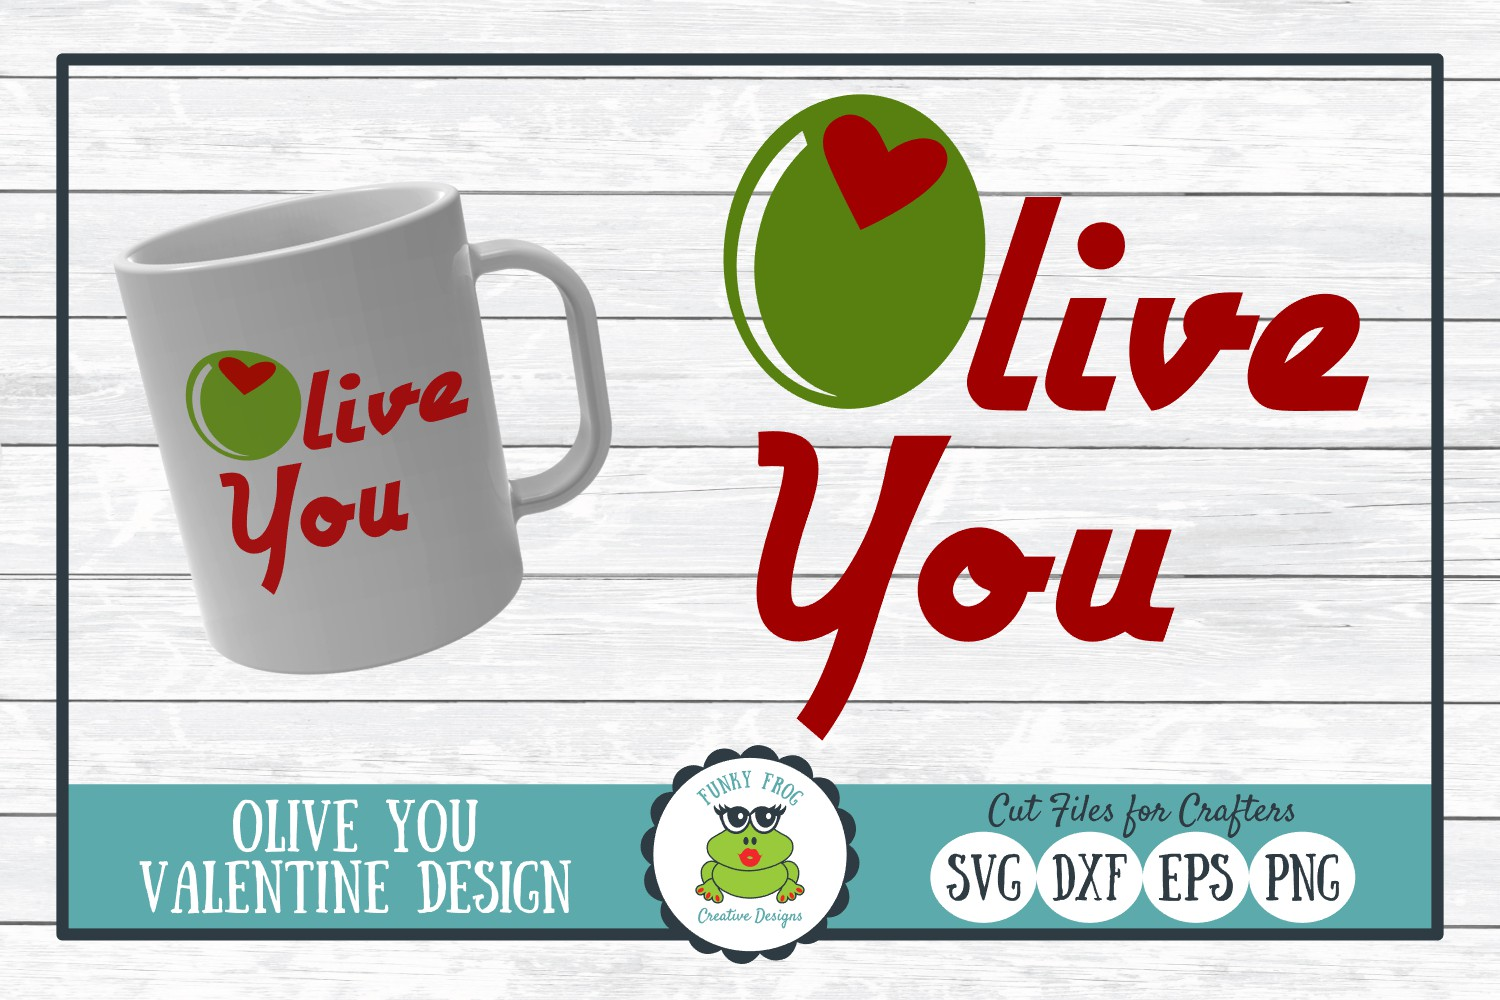 Download Free Olive You Valentine Graphic By Funkyfrogcreativedesigns for Cricut Explore, Silhouette and other cutting machines.